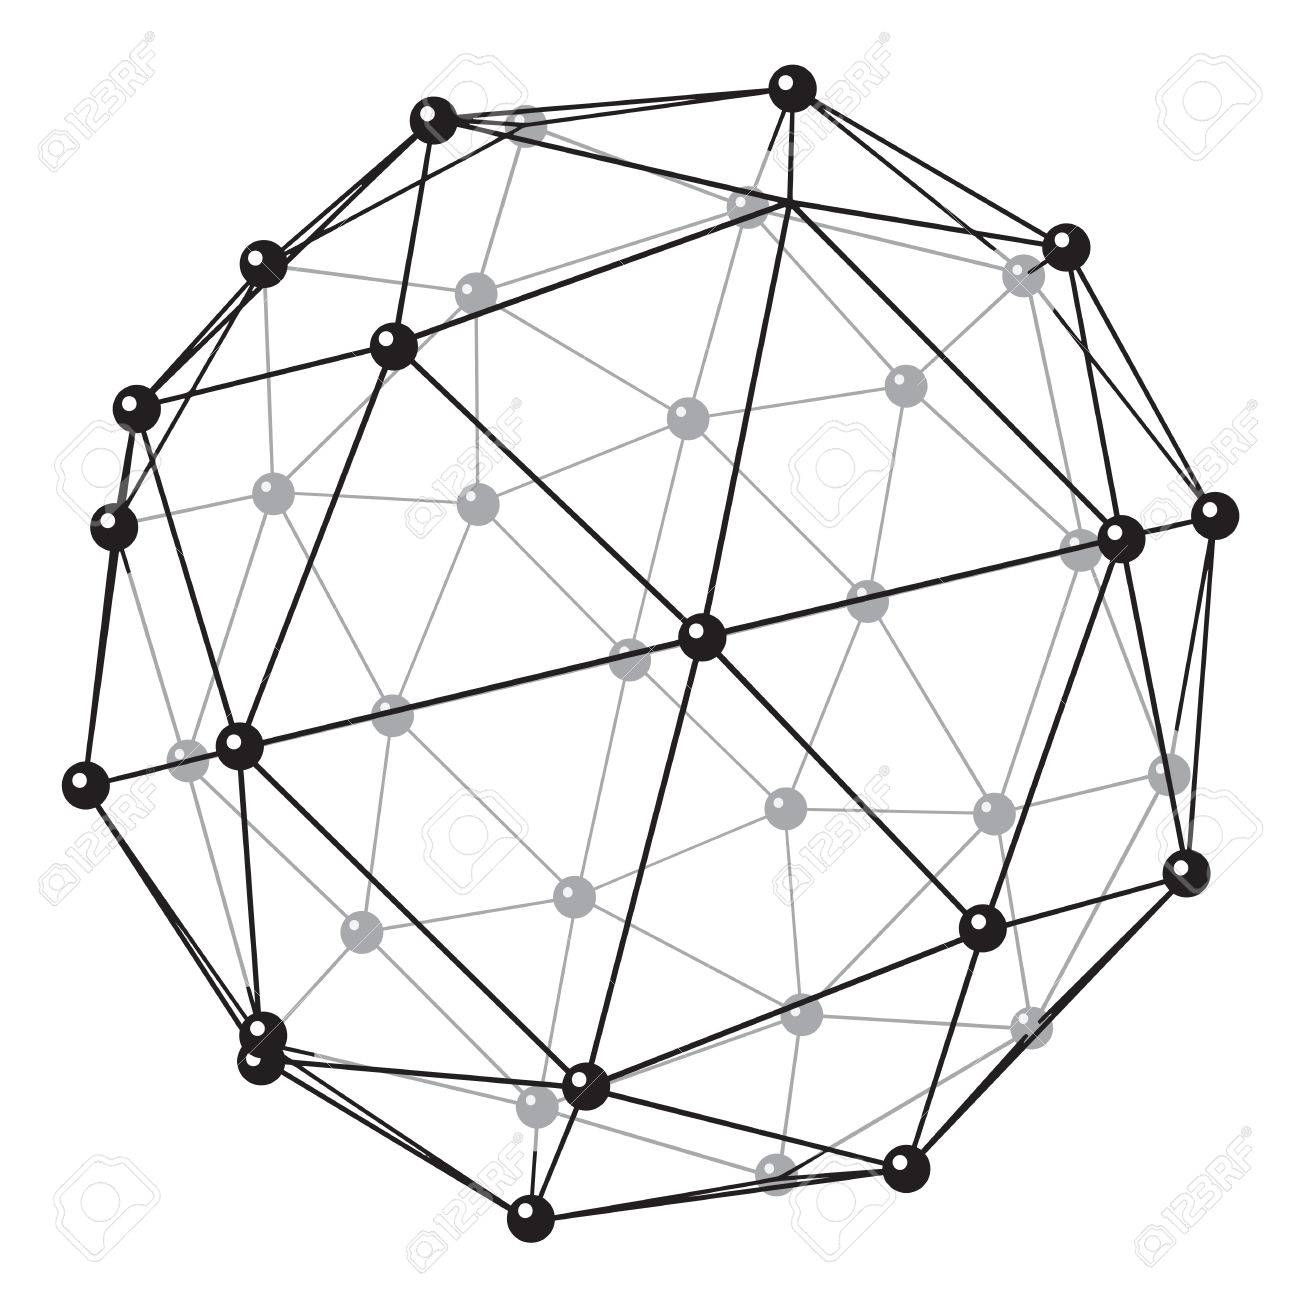 The stylized image of the crystal lattice of a some substance